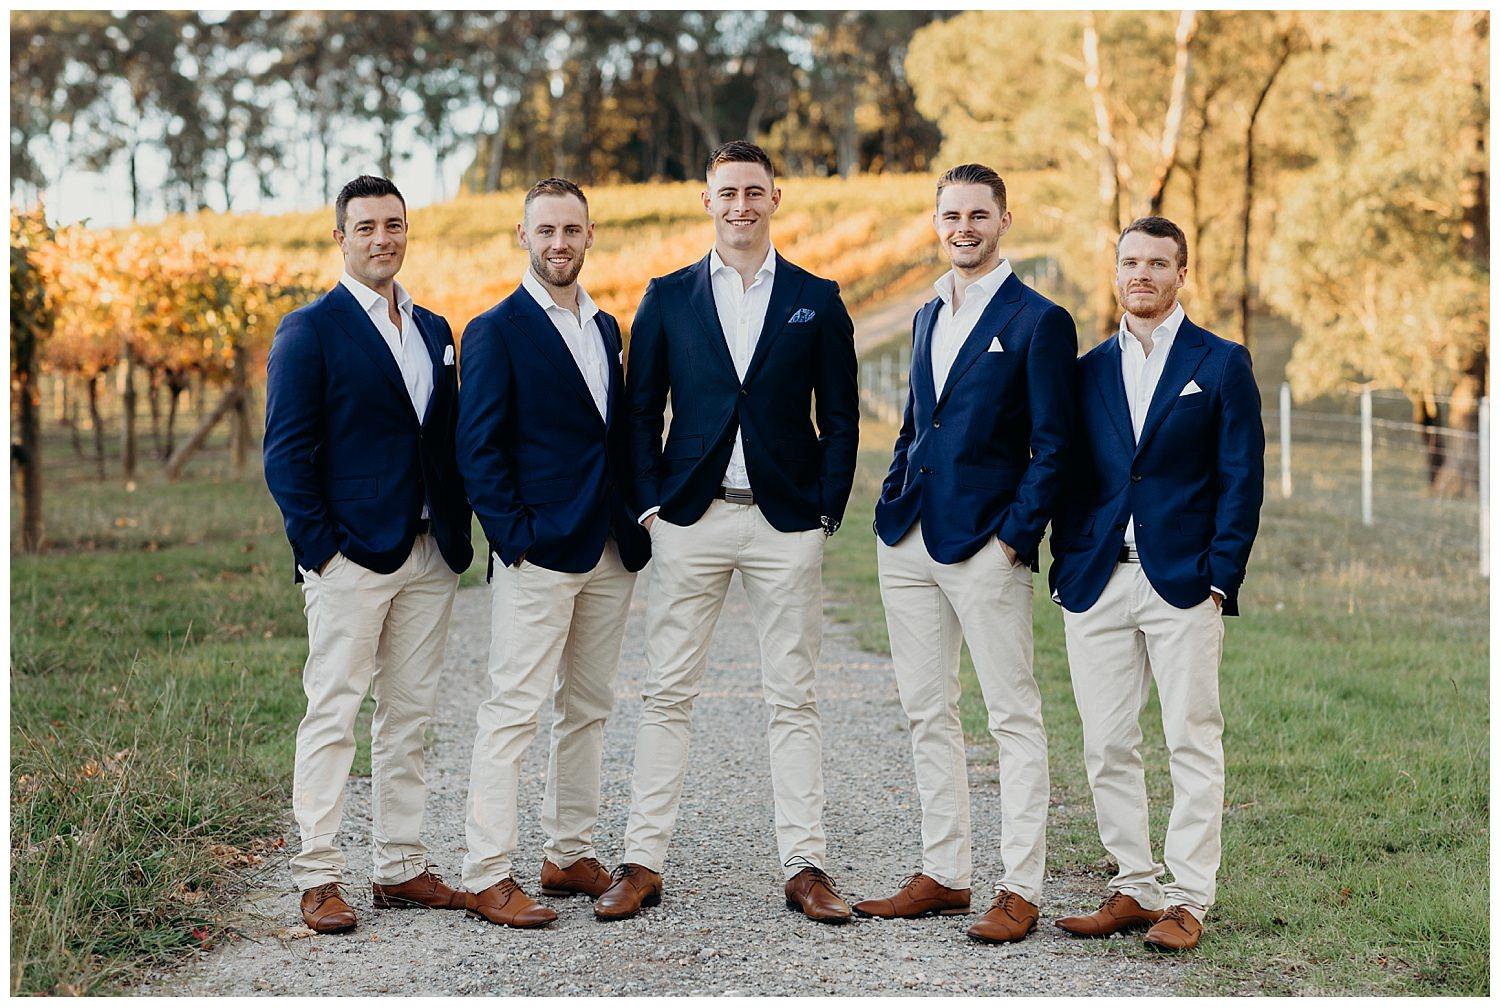 Bowral Southern Highlands Autumn Wedding - Groom and groomsmen wearing MJ Bale